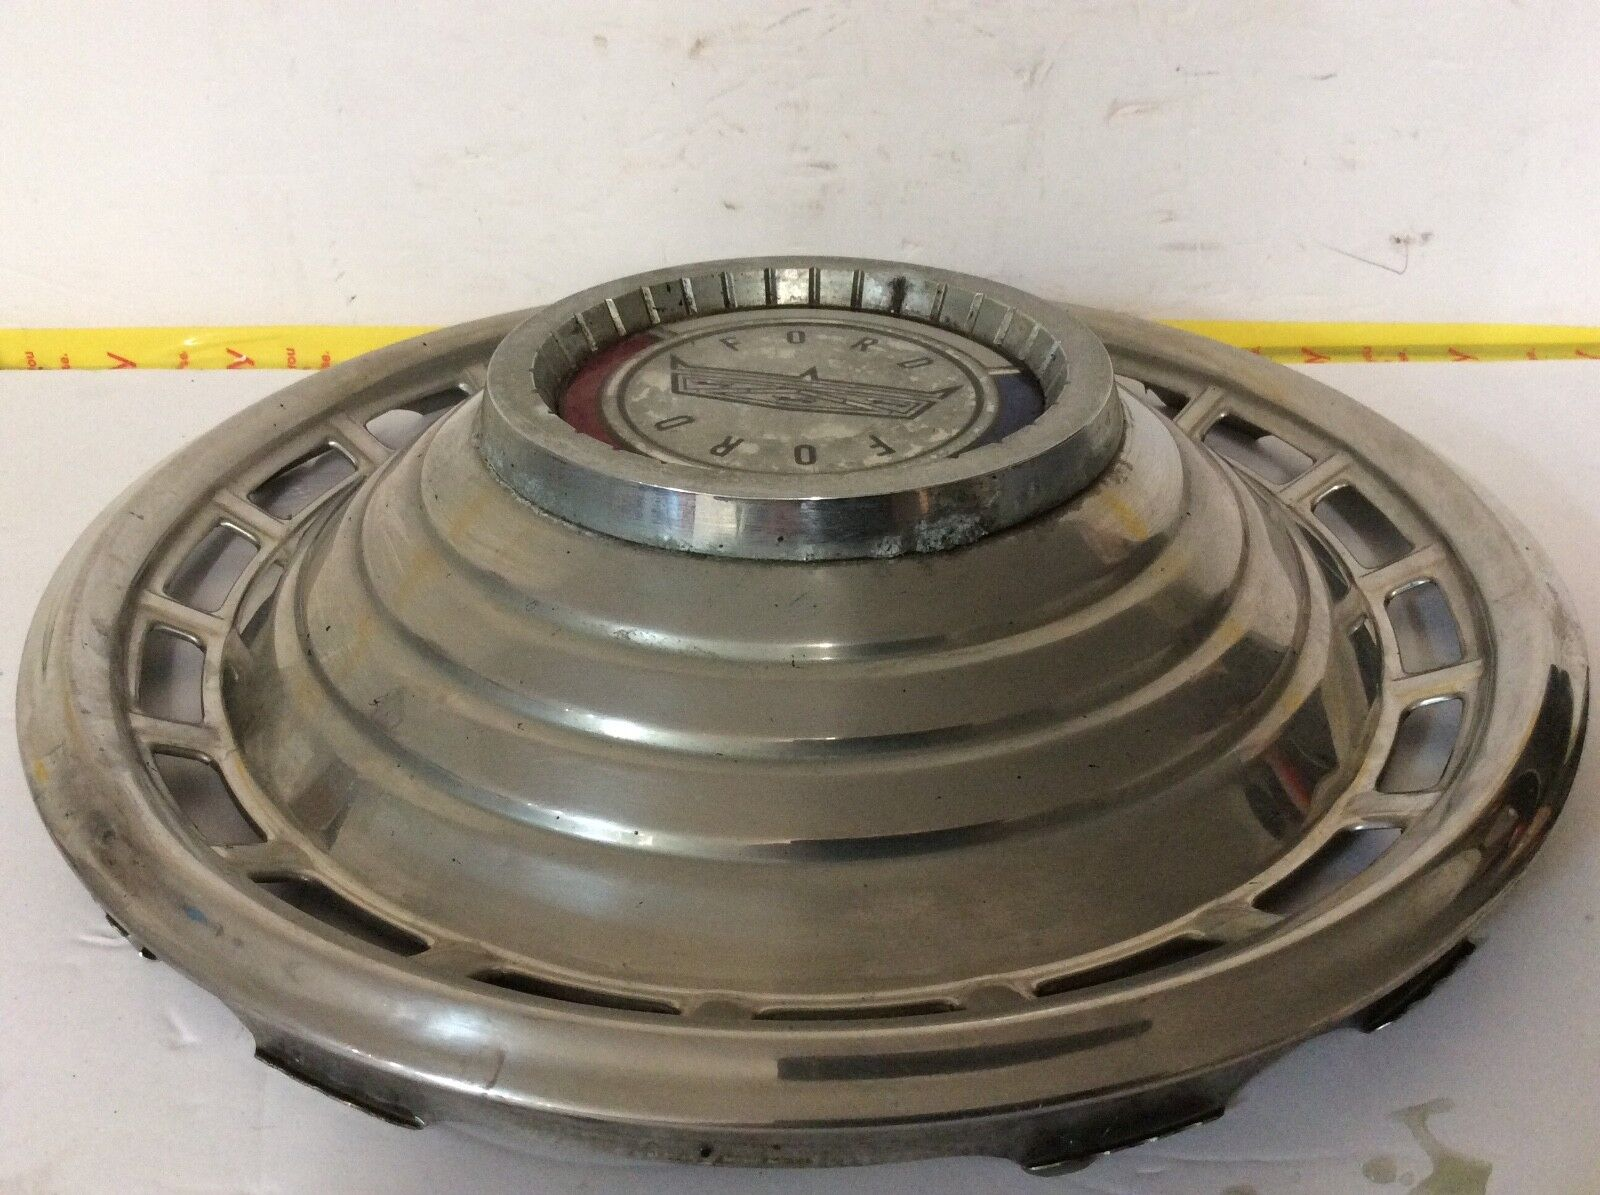 Used 1963 Ford Fairlane Wheels and Hubcaps for Sale